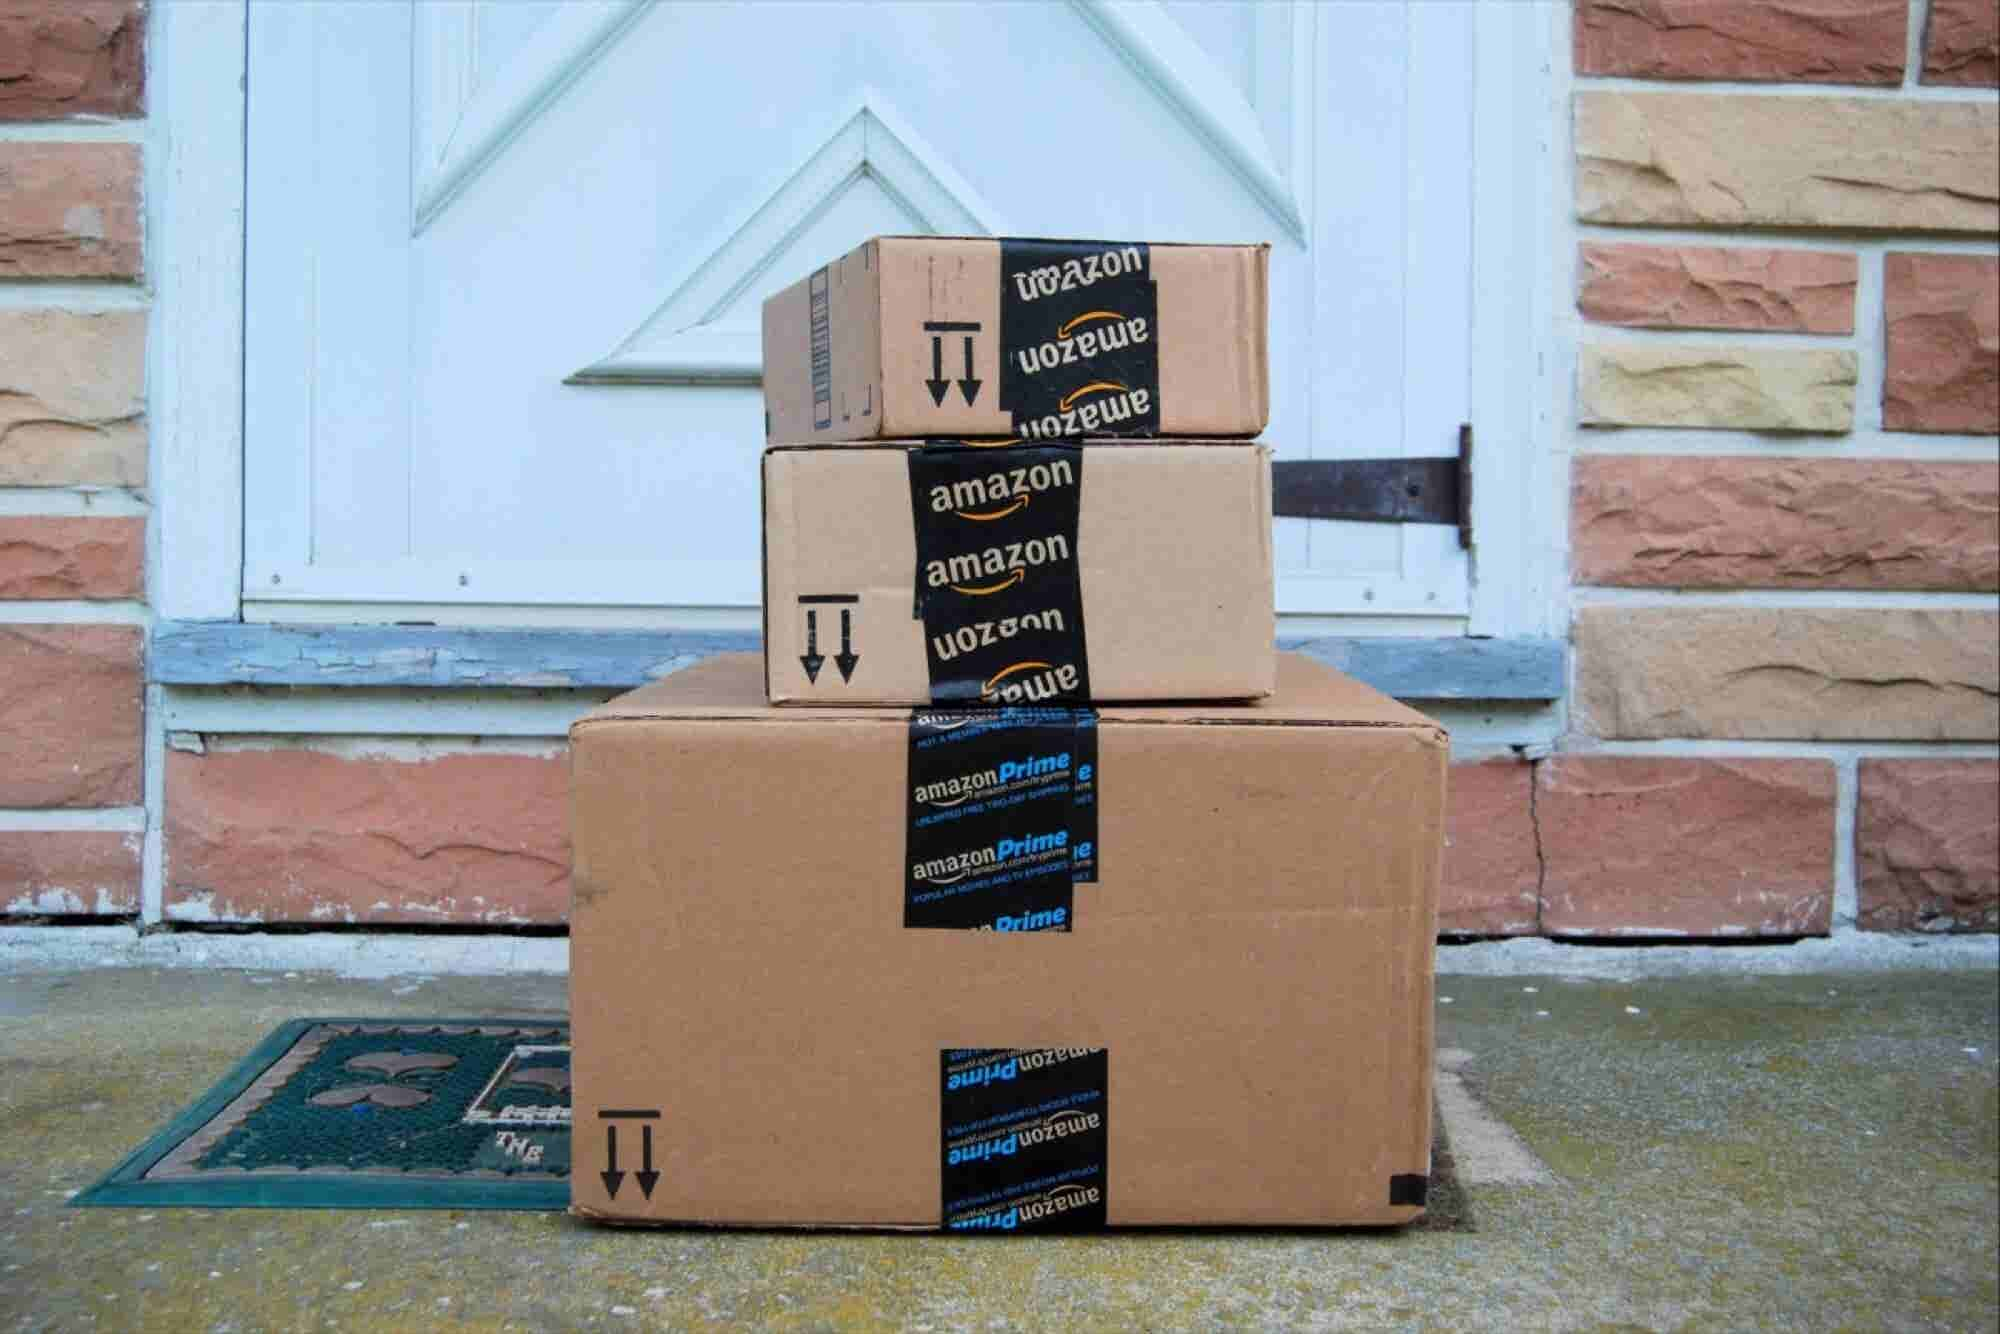 How to Get the Best Amazon Deals and Discounts